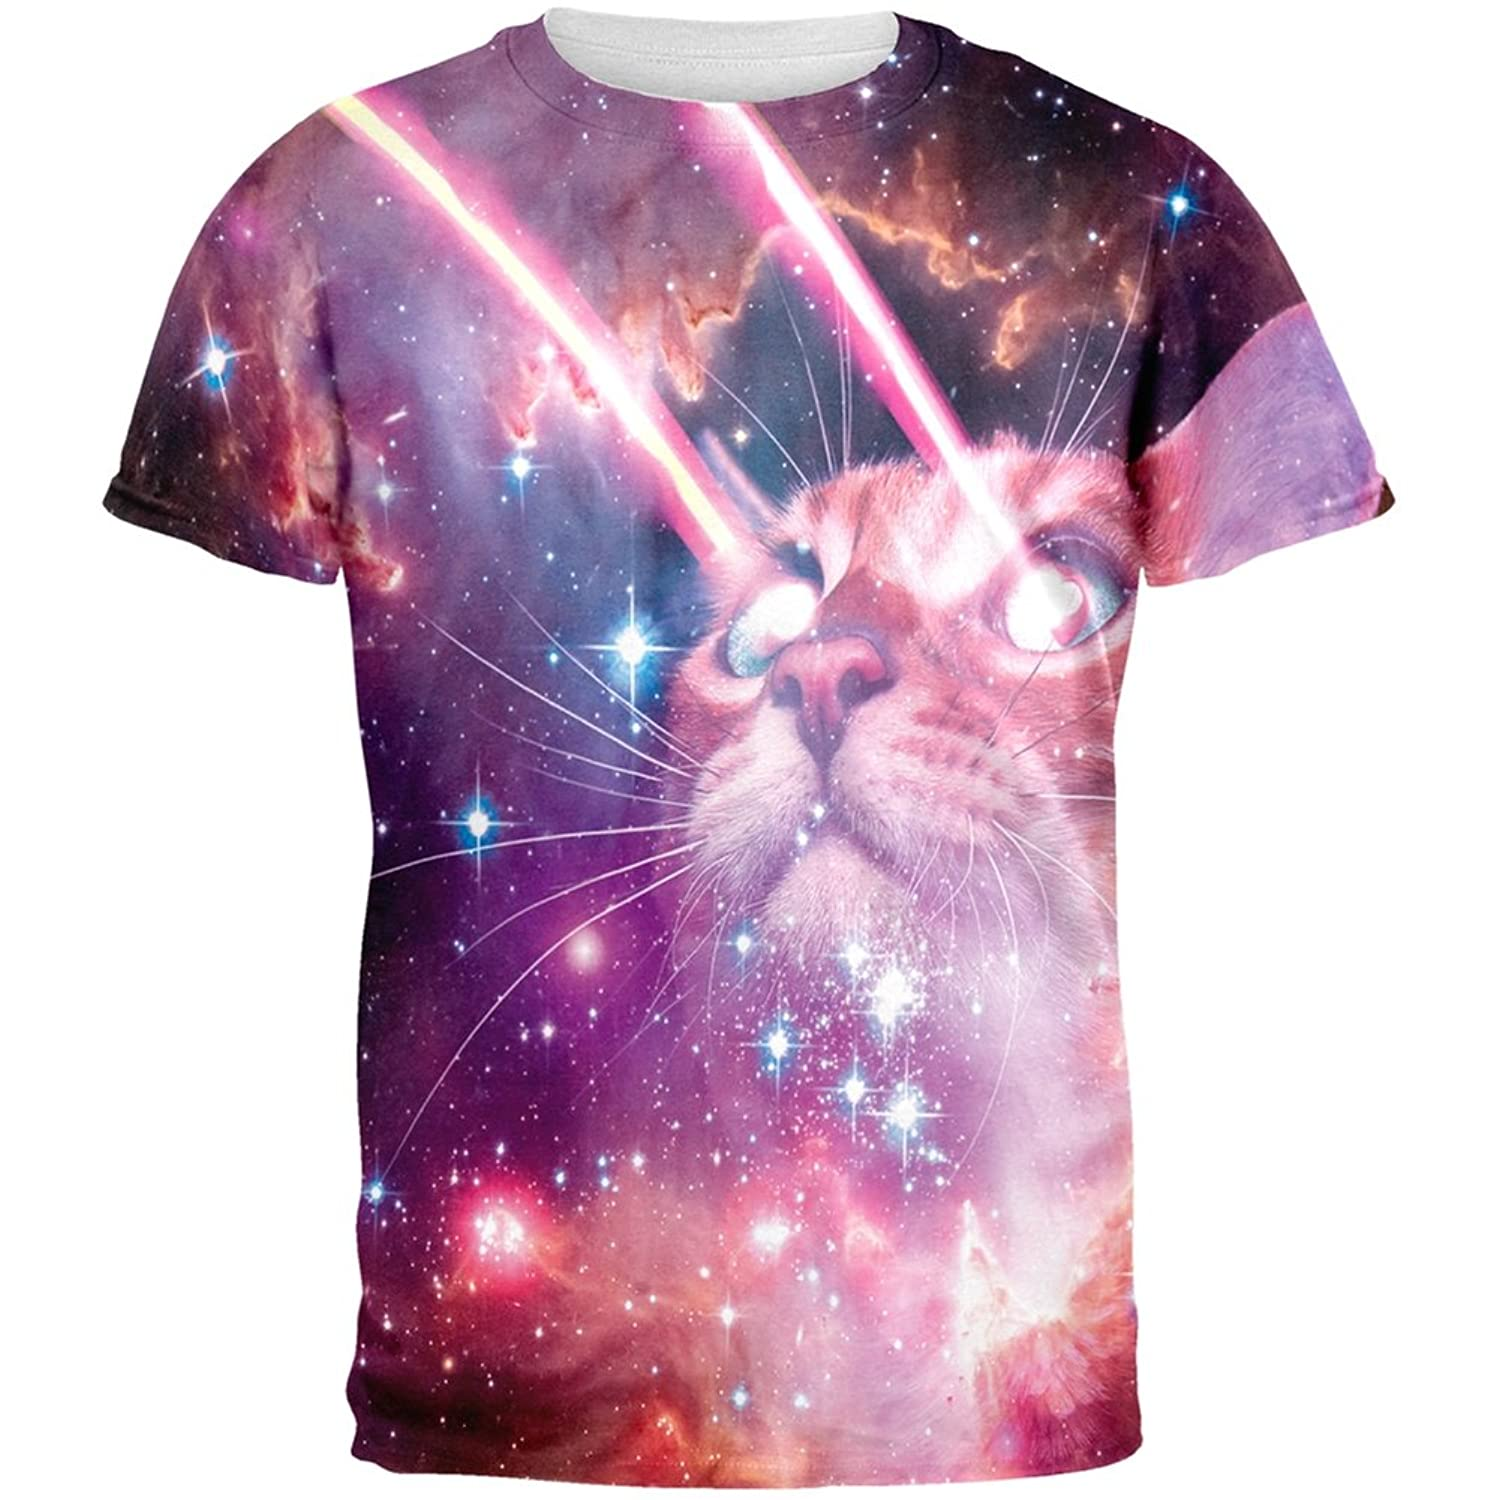 Laser cats in space shirt